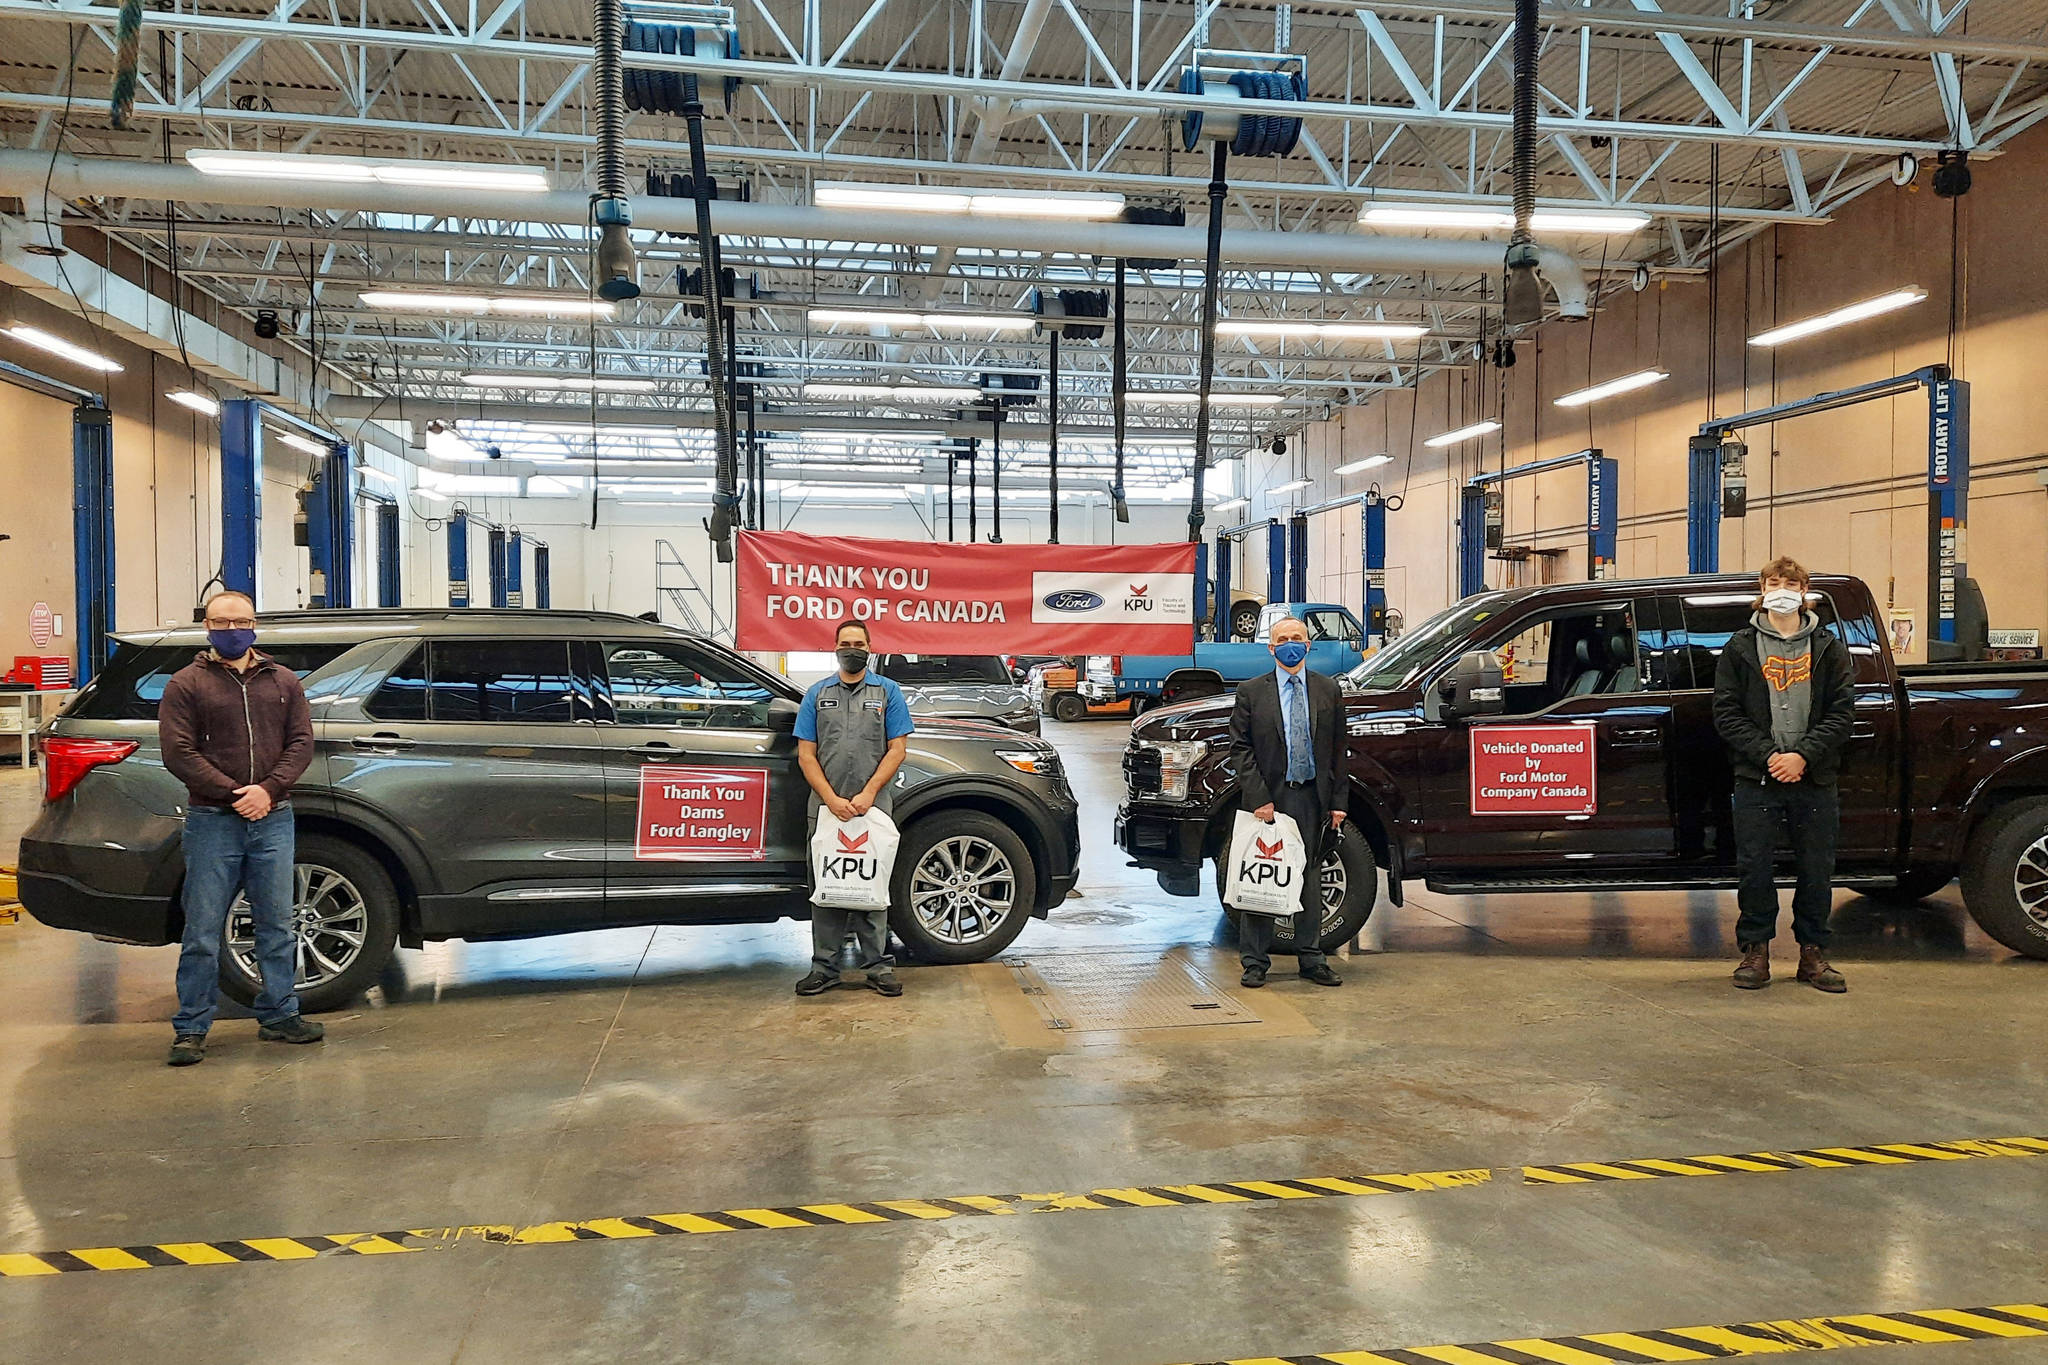 A 2020 Ford Explorer and Ford F-150 were donated to KPU's auto training program, based in Cloverdale. (Special to Black Press Media)